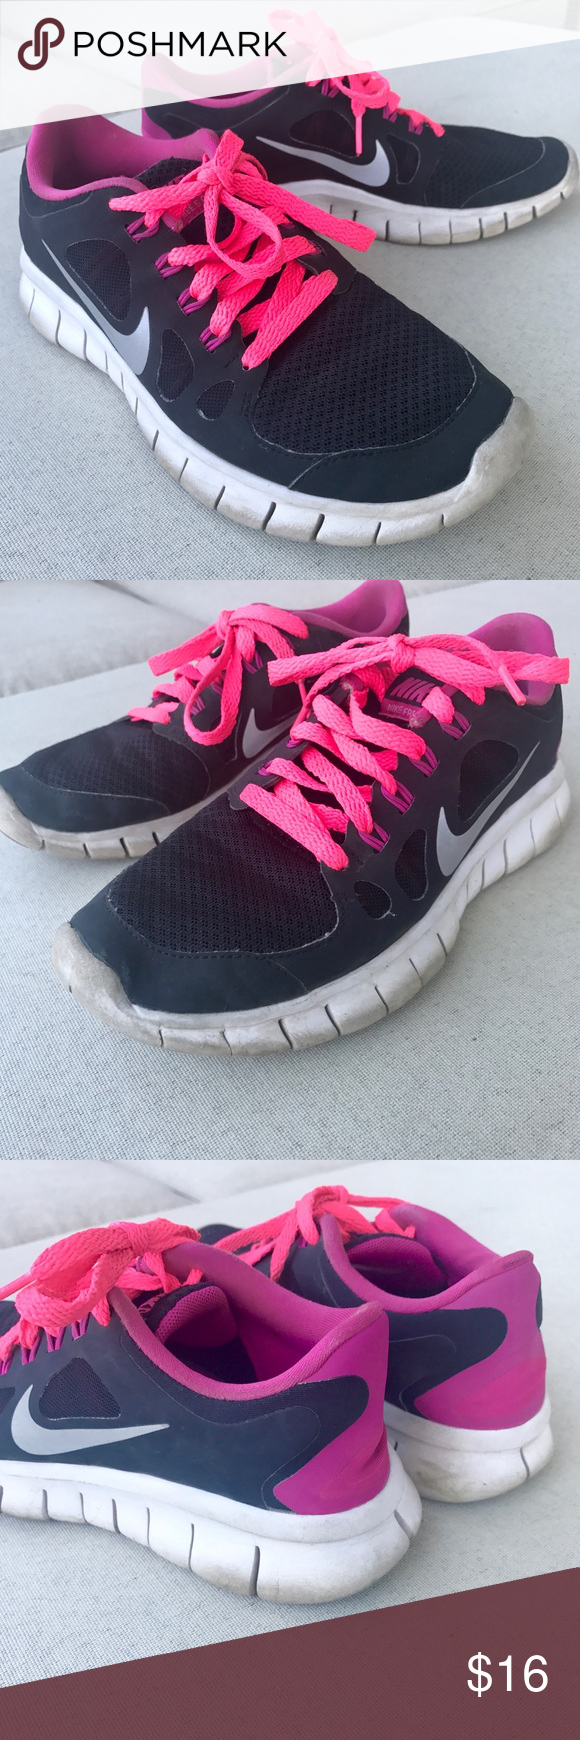 best service 02466 1e8eb Girls NIKE FREE 5.0 SHOES BLACK PINK SNEAKERS RUN Girls NIKE FREE 5.0 run  sneakers. Breathable fabric, light weight soles, neon pink laces.